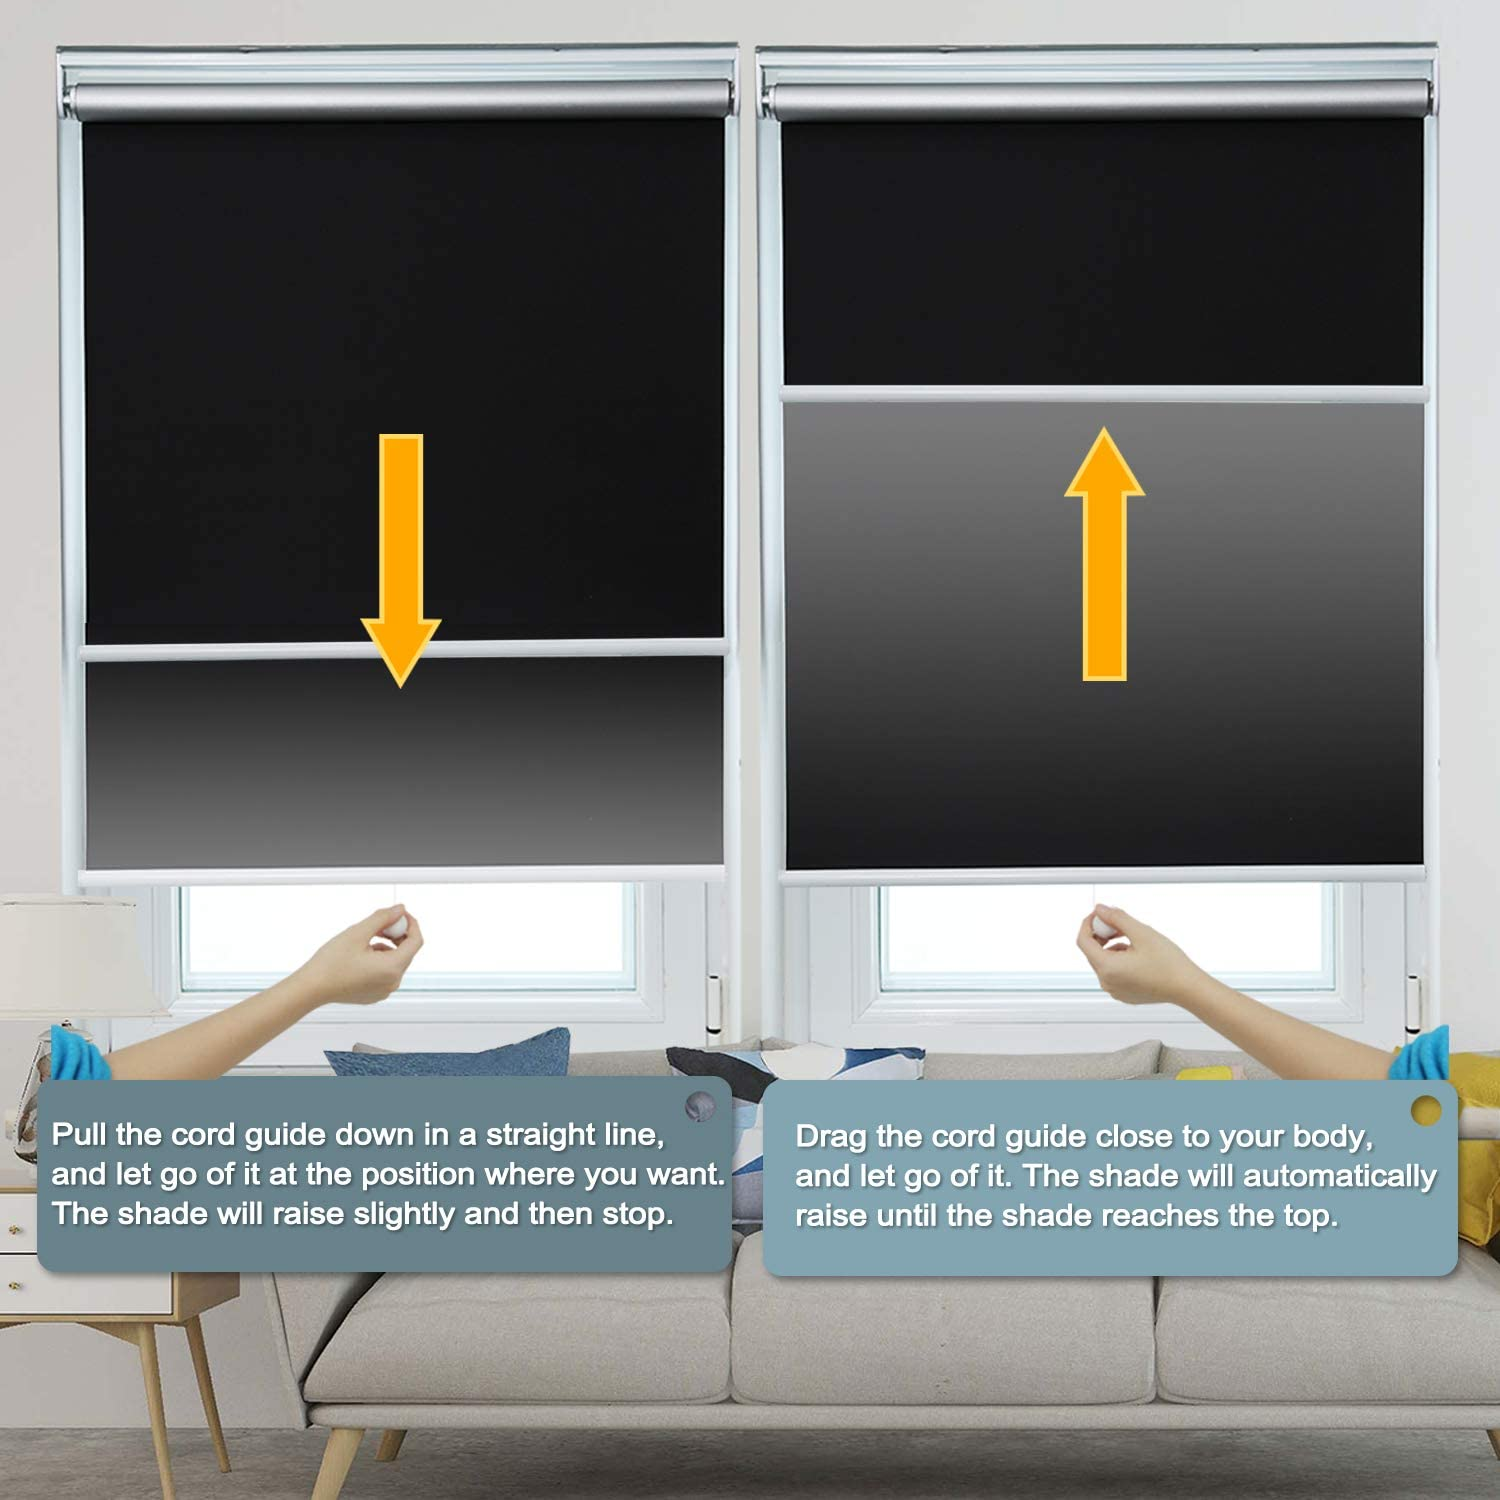 Allesin Blackout Roller Shades Window Shades and Cordless Blinds for Home  Offi